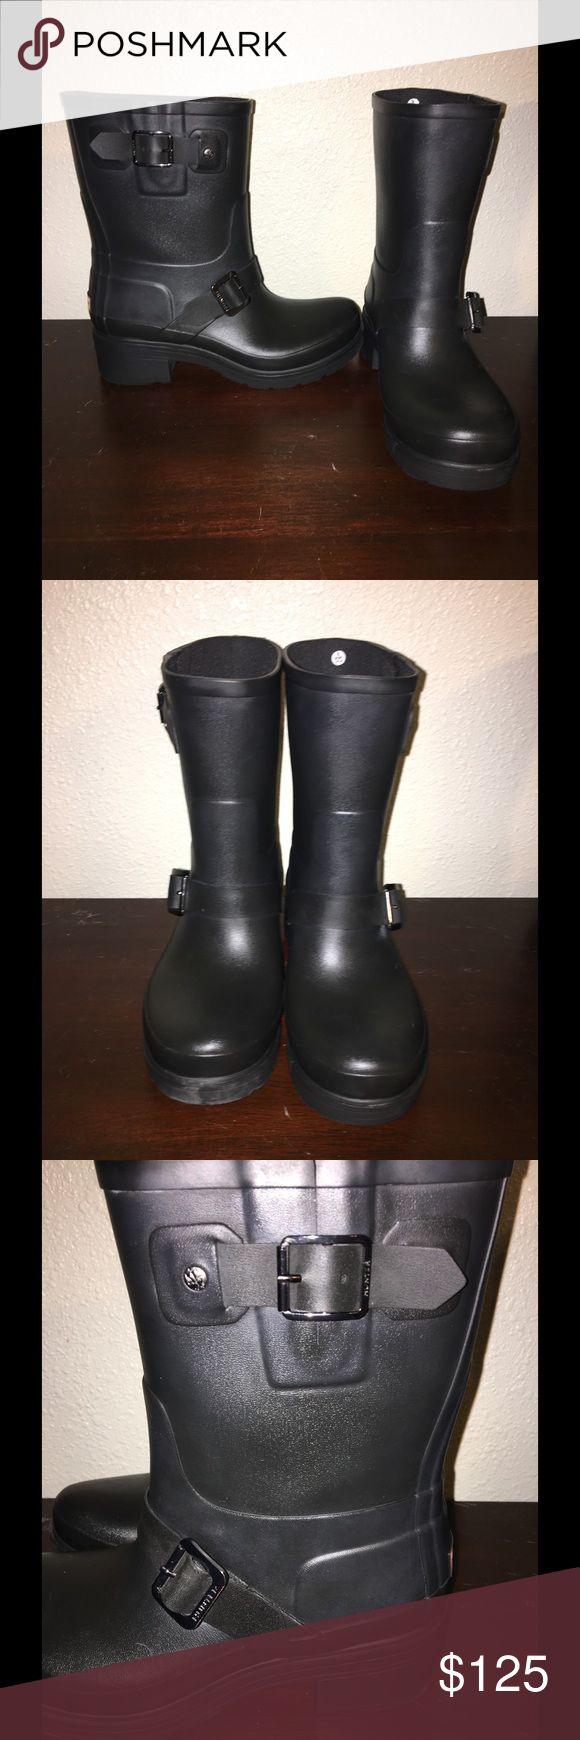 🙀Hunter Women's Biker Boots😻 Hunter women's biker boots worn one time. These are a bit shorter than the short original hunter boots. And the buckle is functional and not cosmetic. Hunter Boots Shoes Winter & Rain Boots